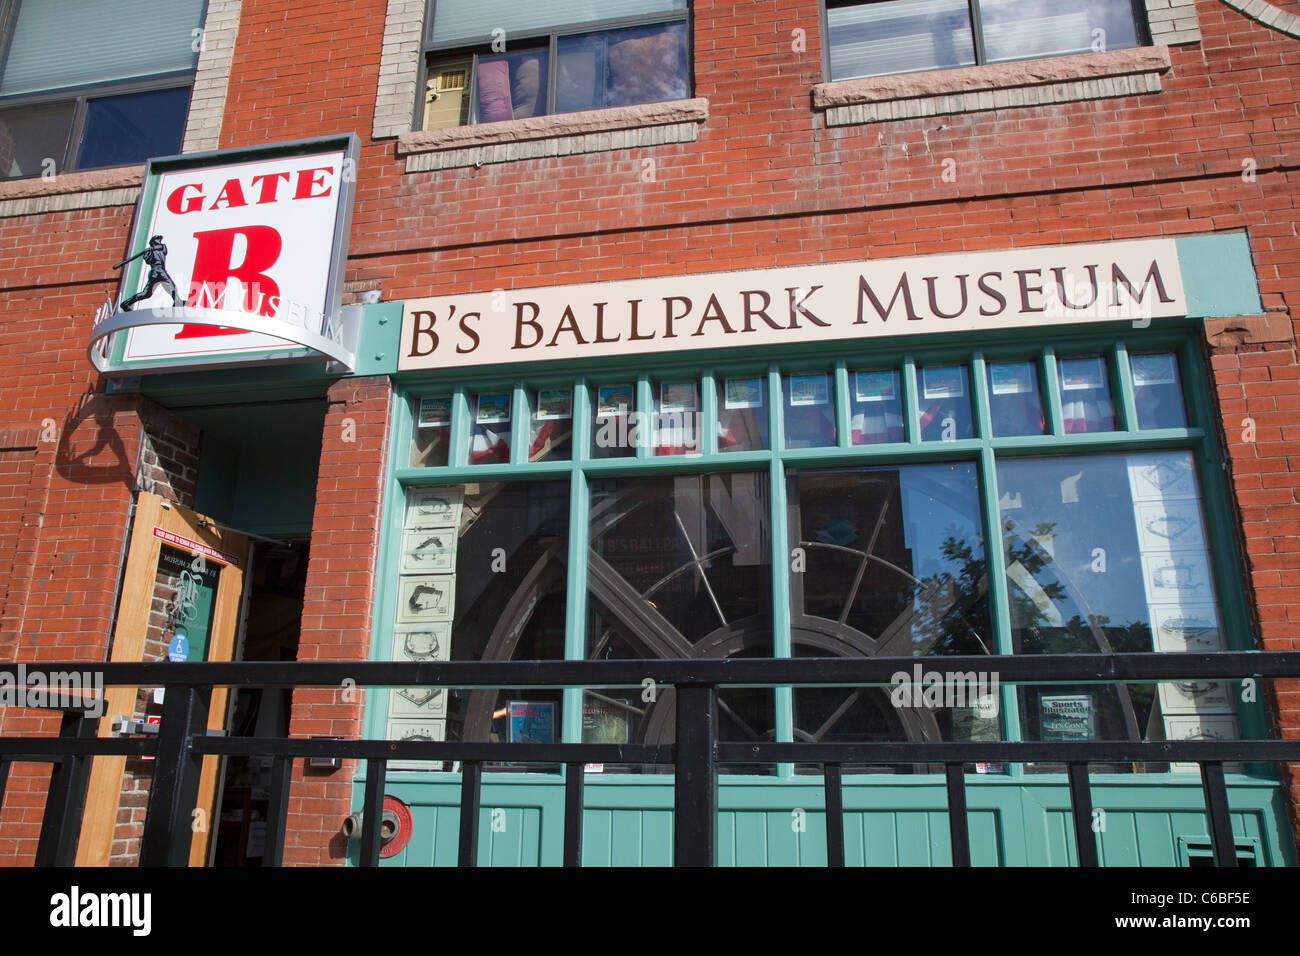 Denver, Colorado - B's Ballpark Museum, a small museum near Coors Field that contains memorabilia from all major - Stock Image